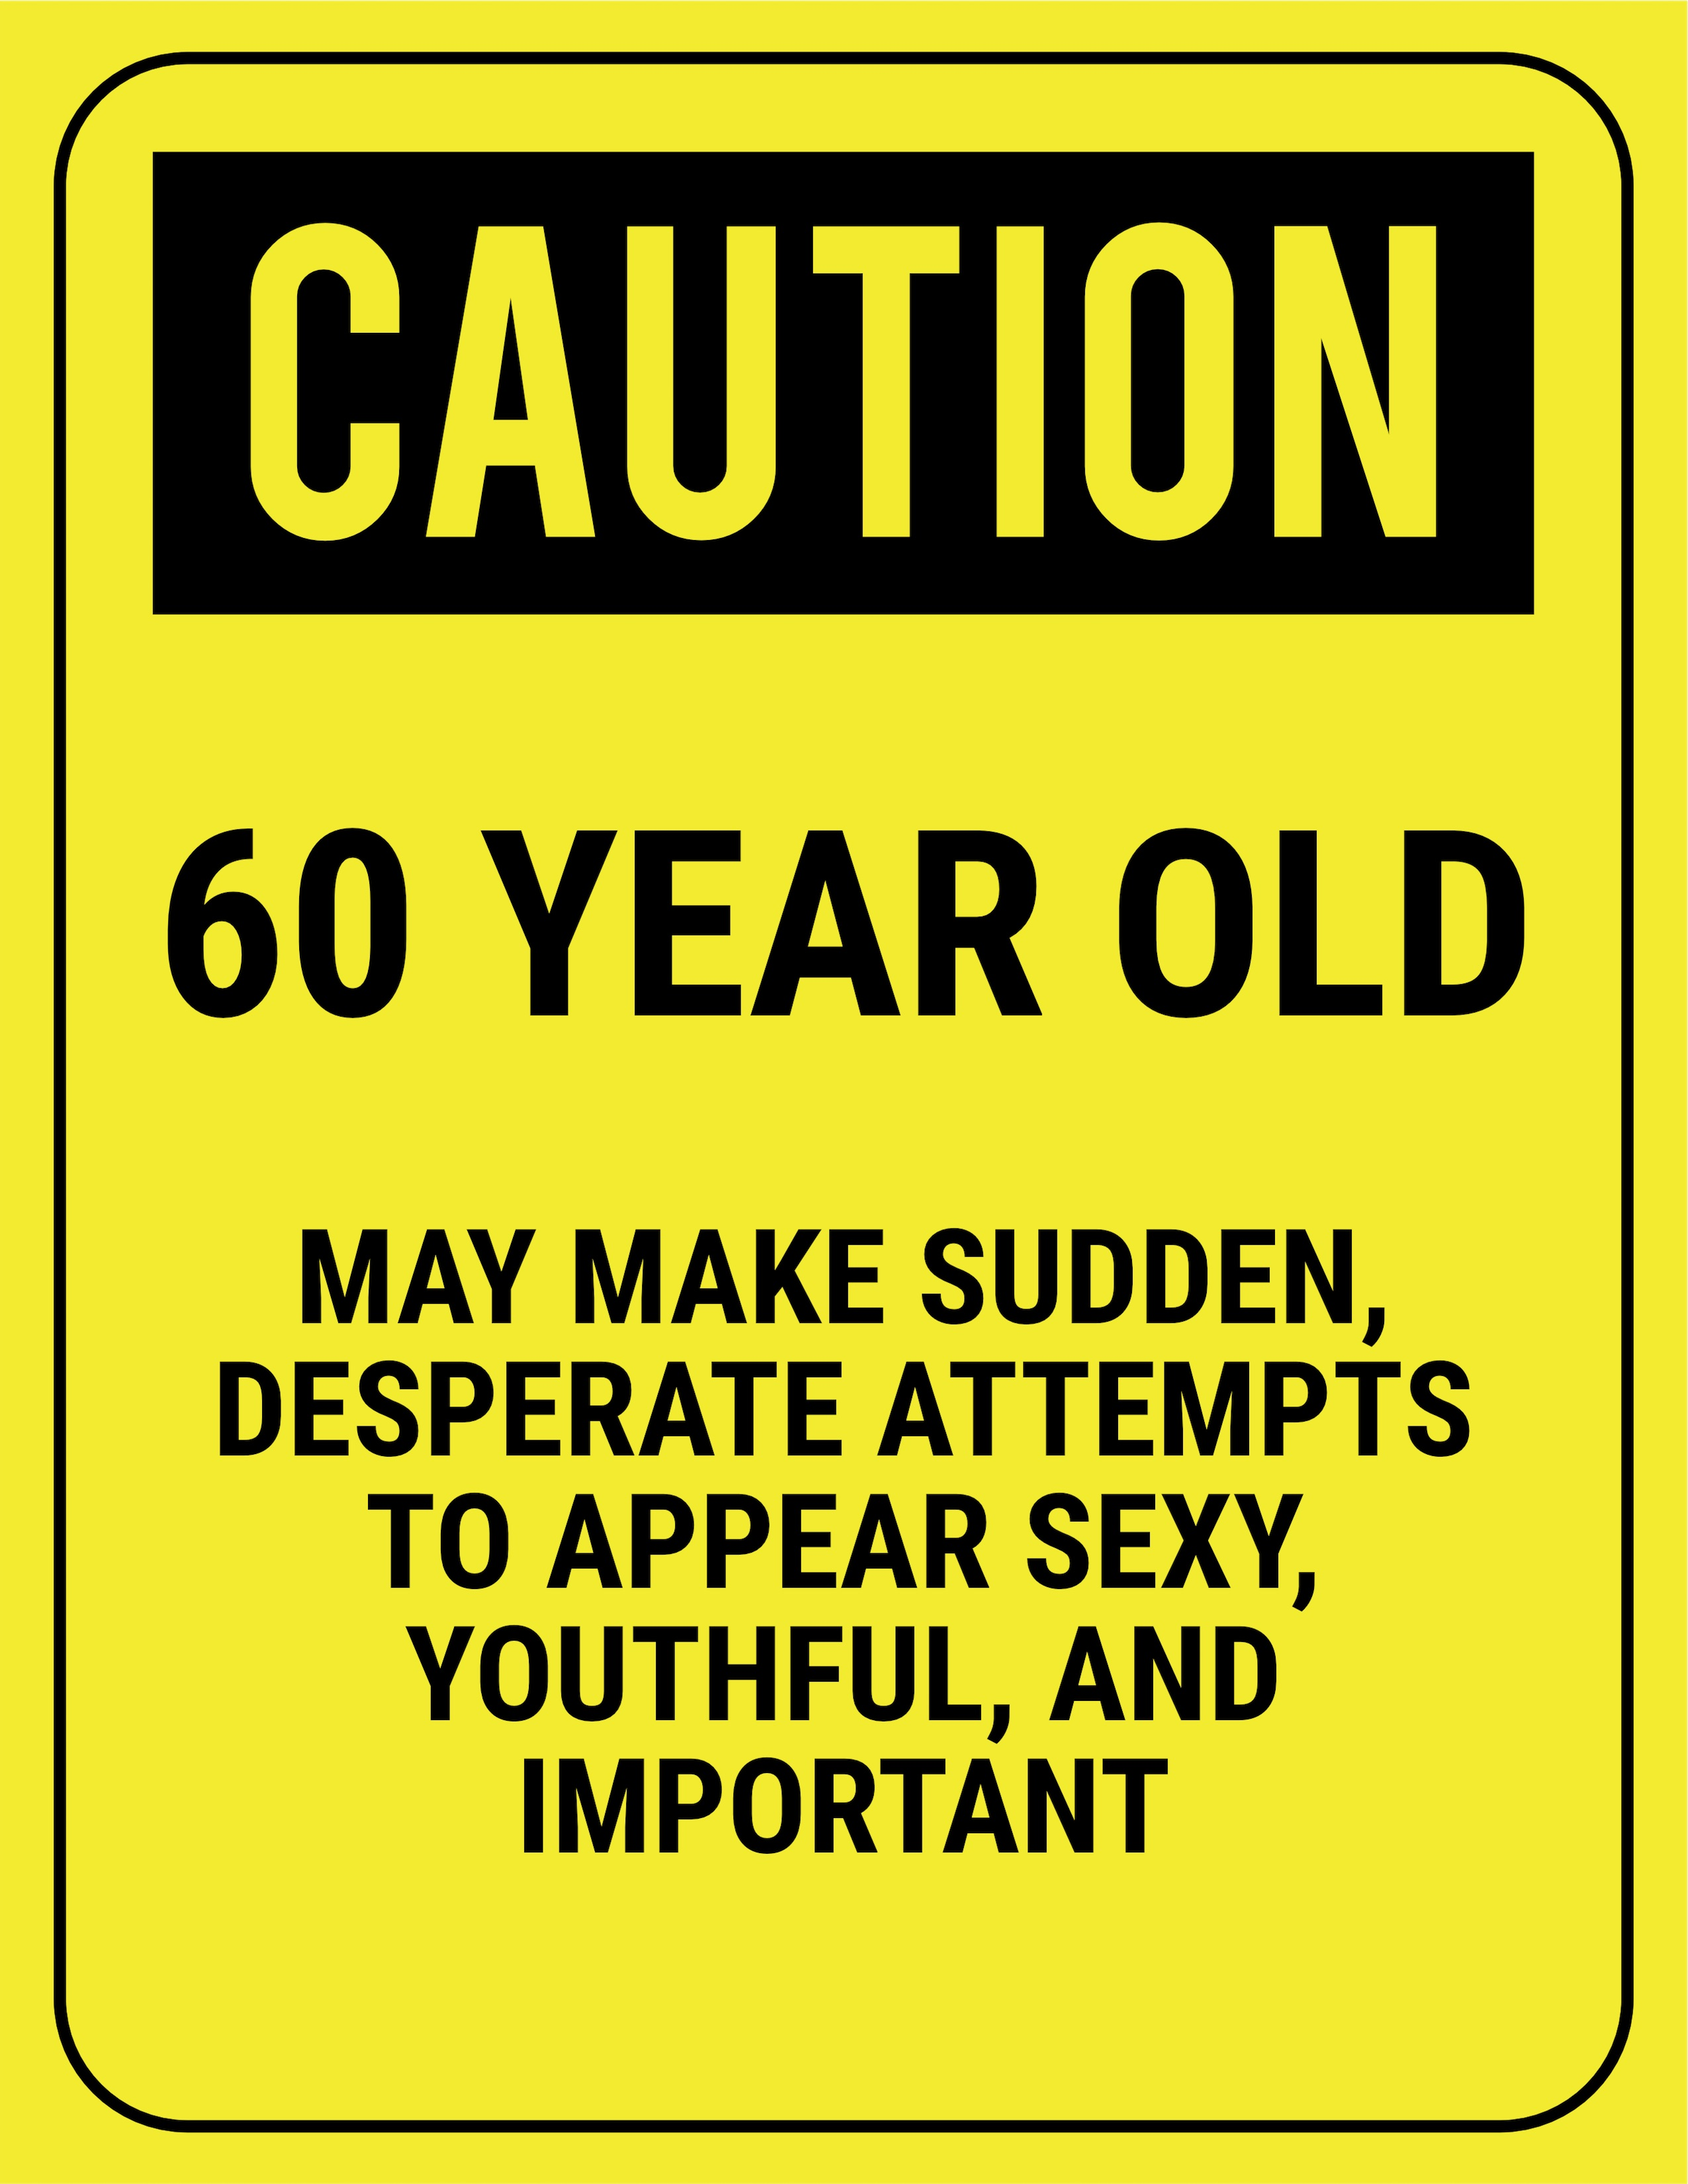 Caution 60 Year Old